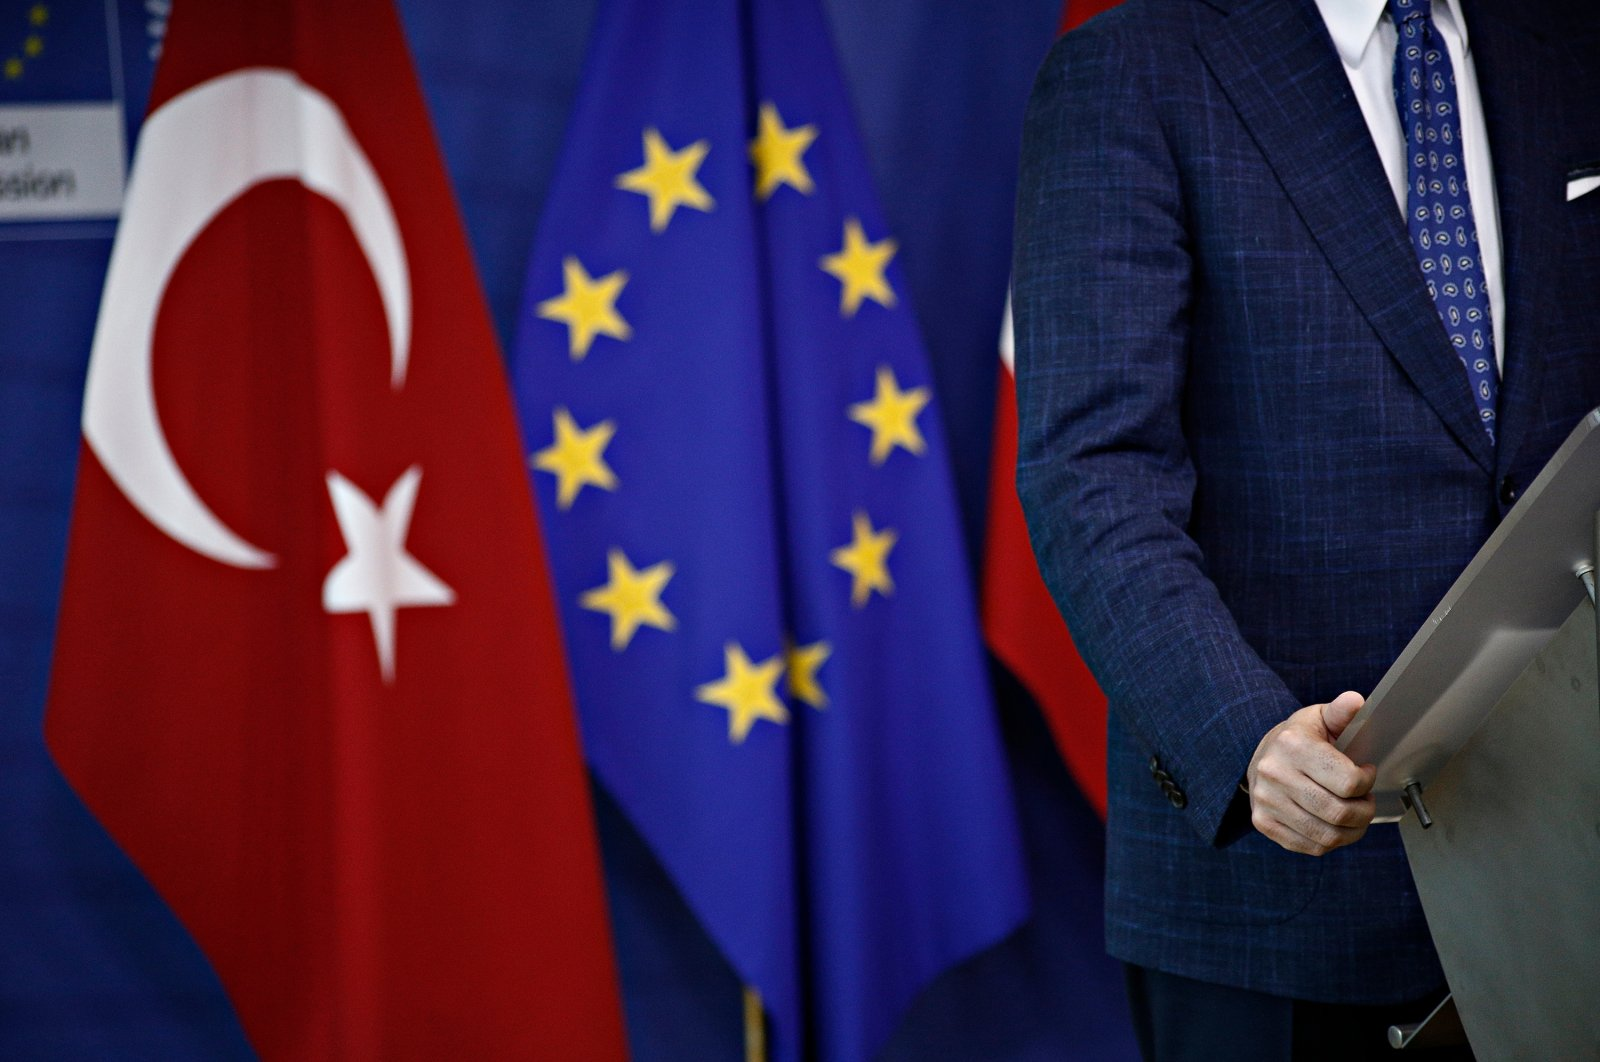 A man stands next to the flags of Turkey and the EU at the headquarters of the European Commission in Brussels, Belgium, Jul. 25, 2017. (Shutterstock File Photo)